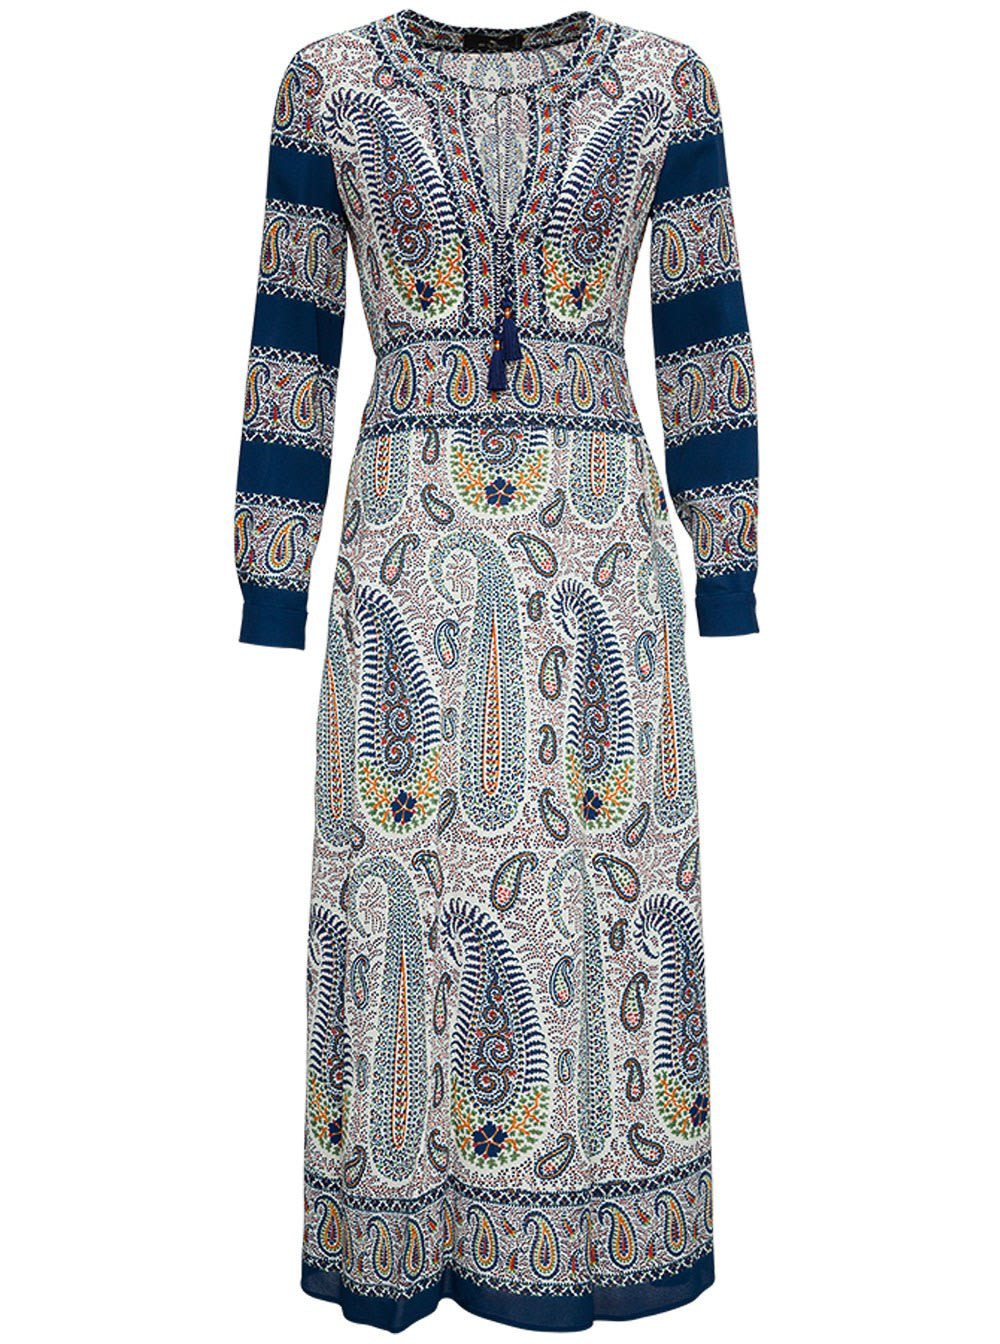 Etro LONG DRESS WITH PAISLEY MOSAIC PRINT